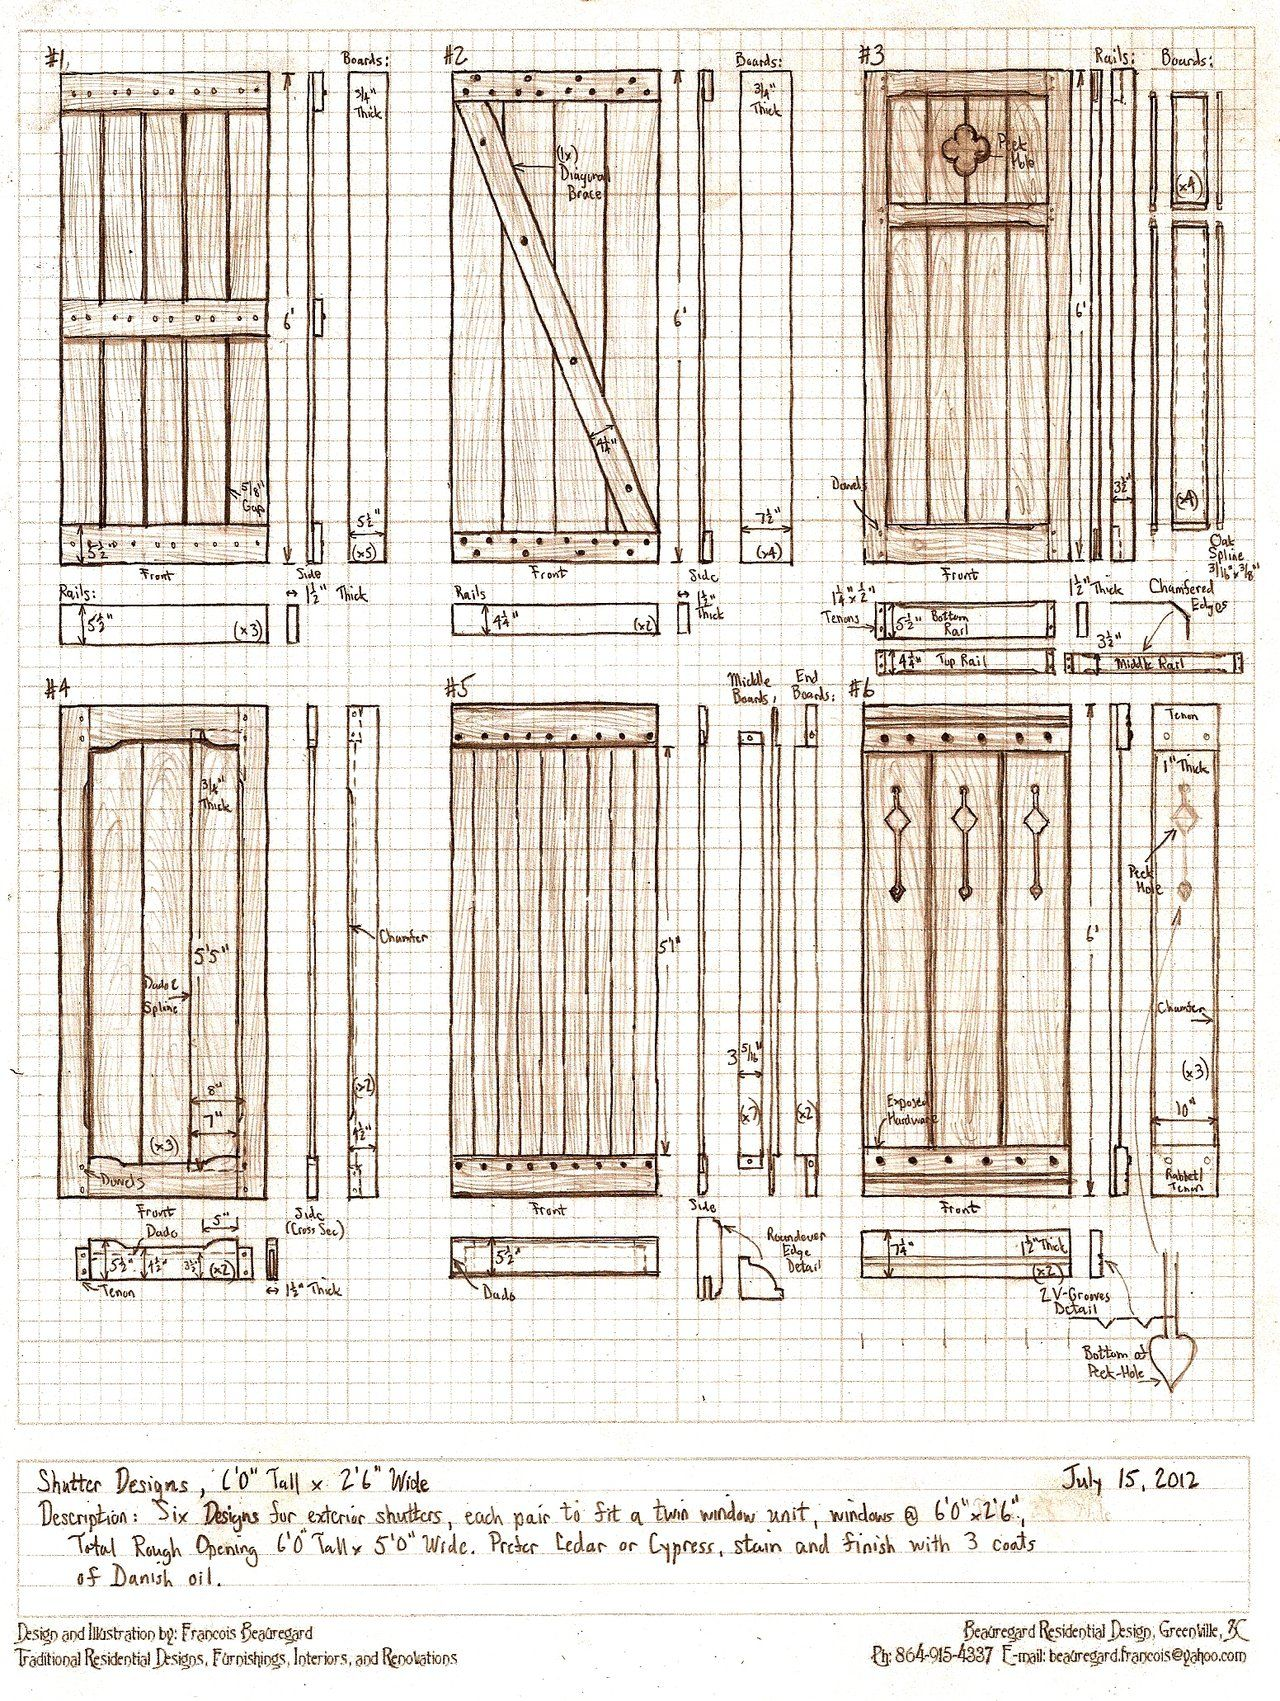 six exterior shutter designs by